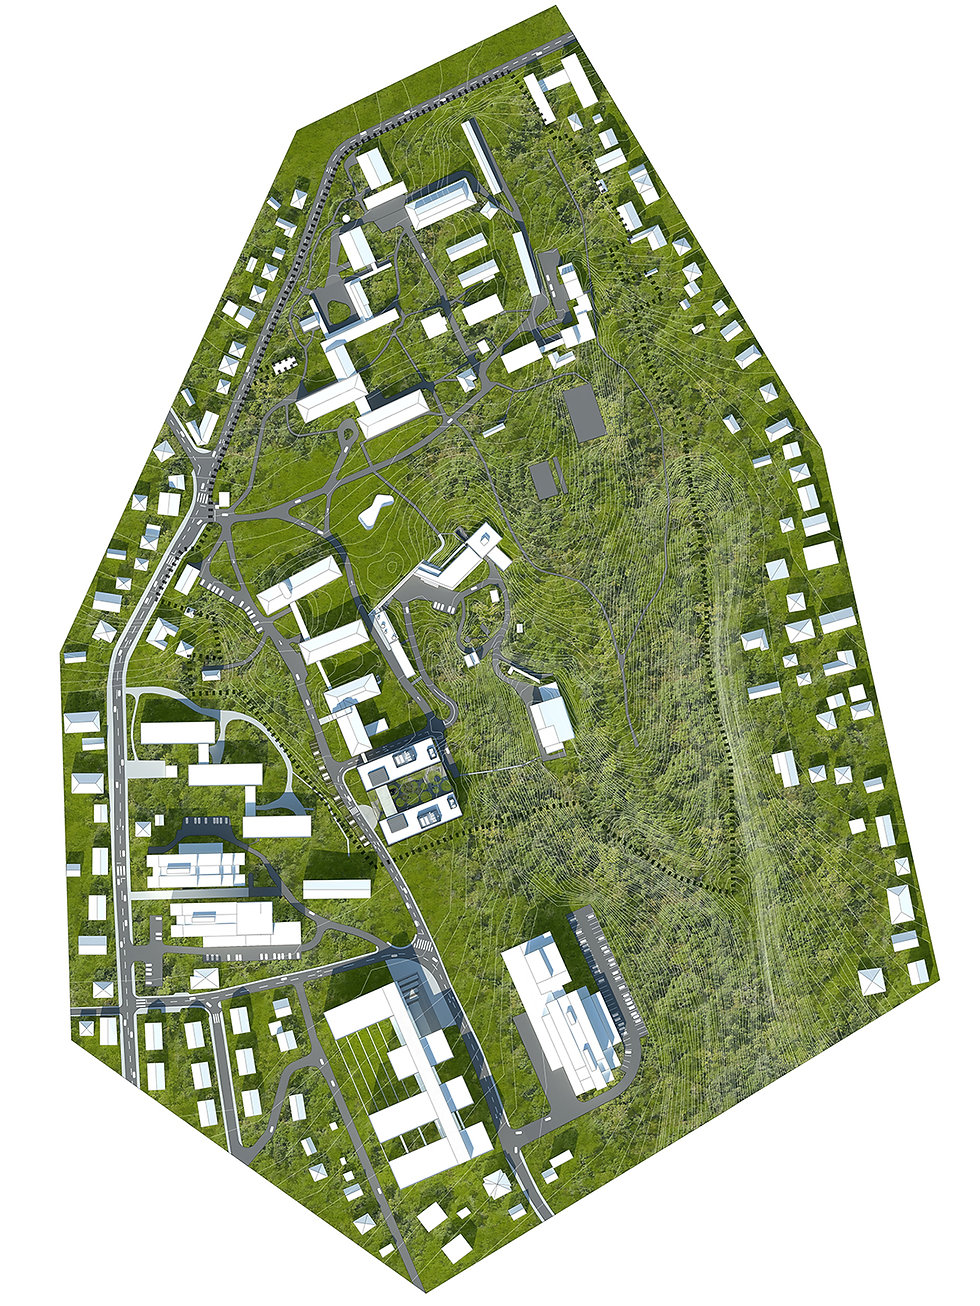 This is a site plan for Institute Ruđer Bošković in Zagreb, Croatia with the foor plan of the new laboratory building designed by Onda arhitektura.